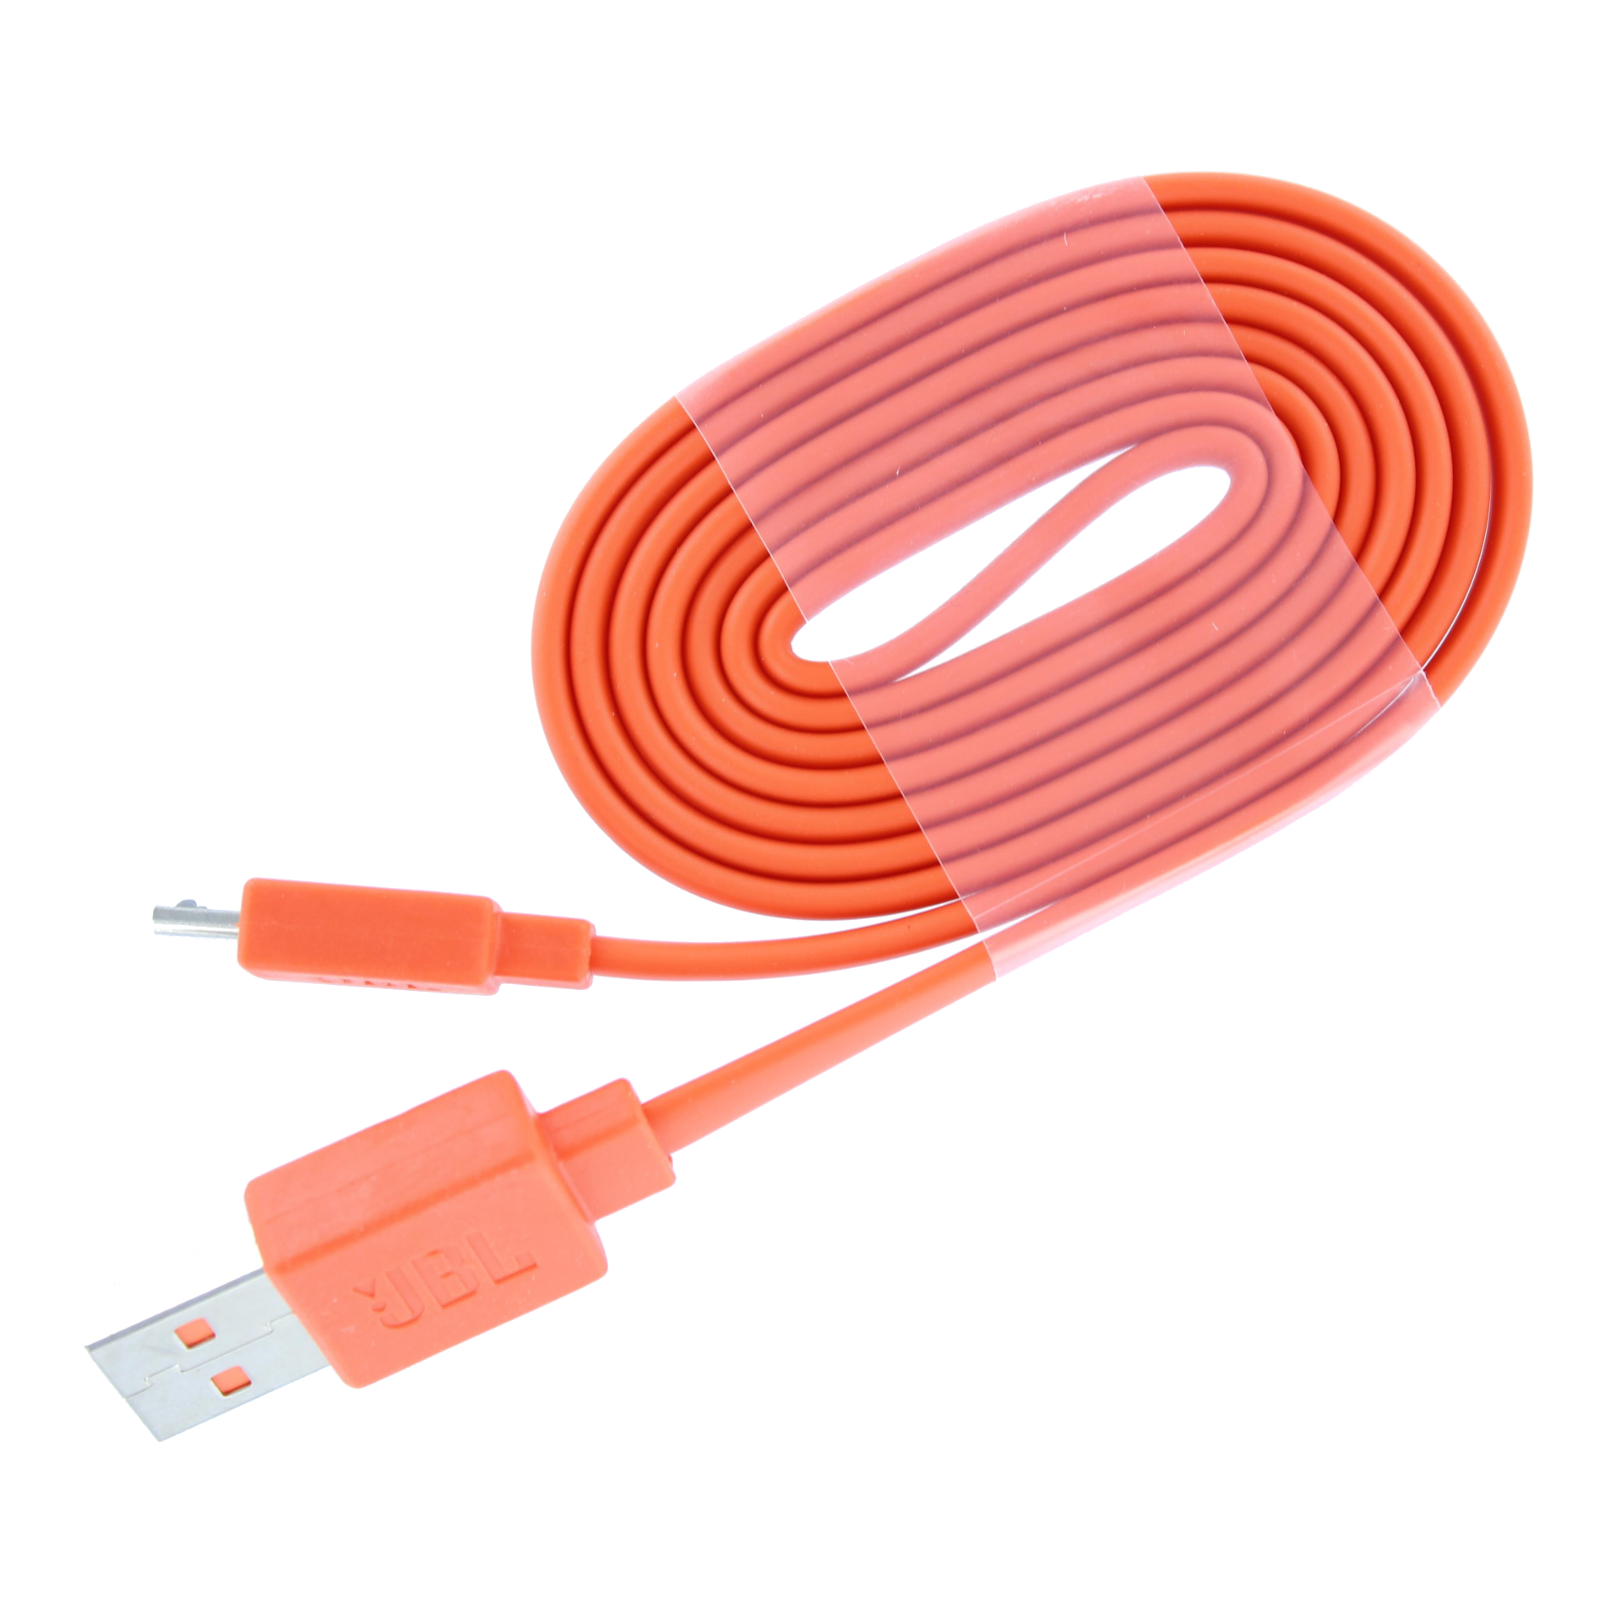 USB Charging cable 100cm, Flip 2/3/4, Charge, Pulse - Orange - USB charging cable - Hero